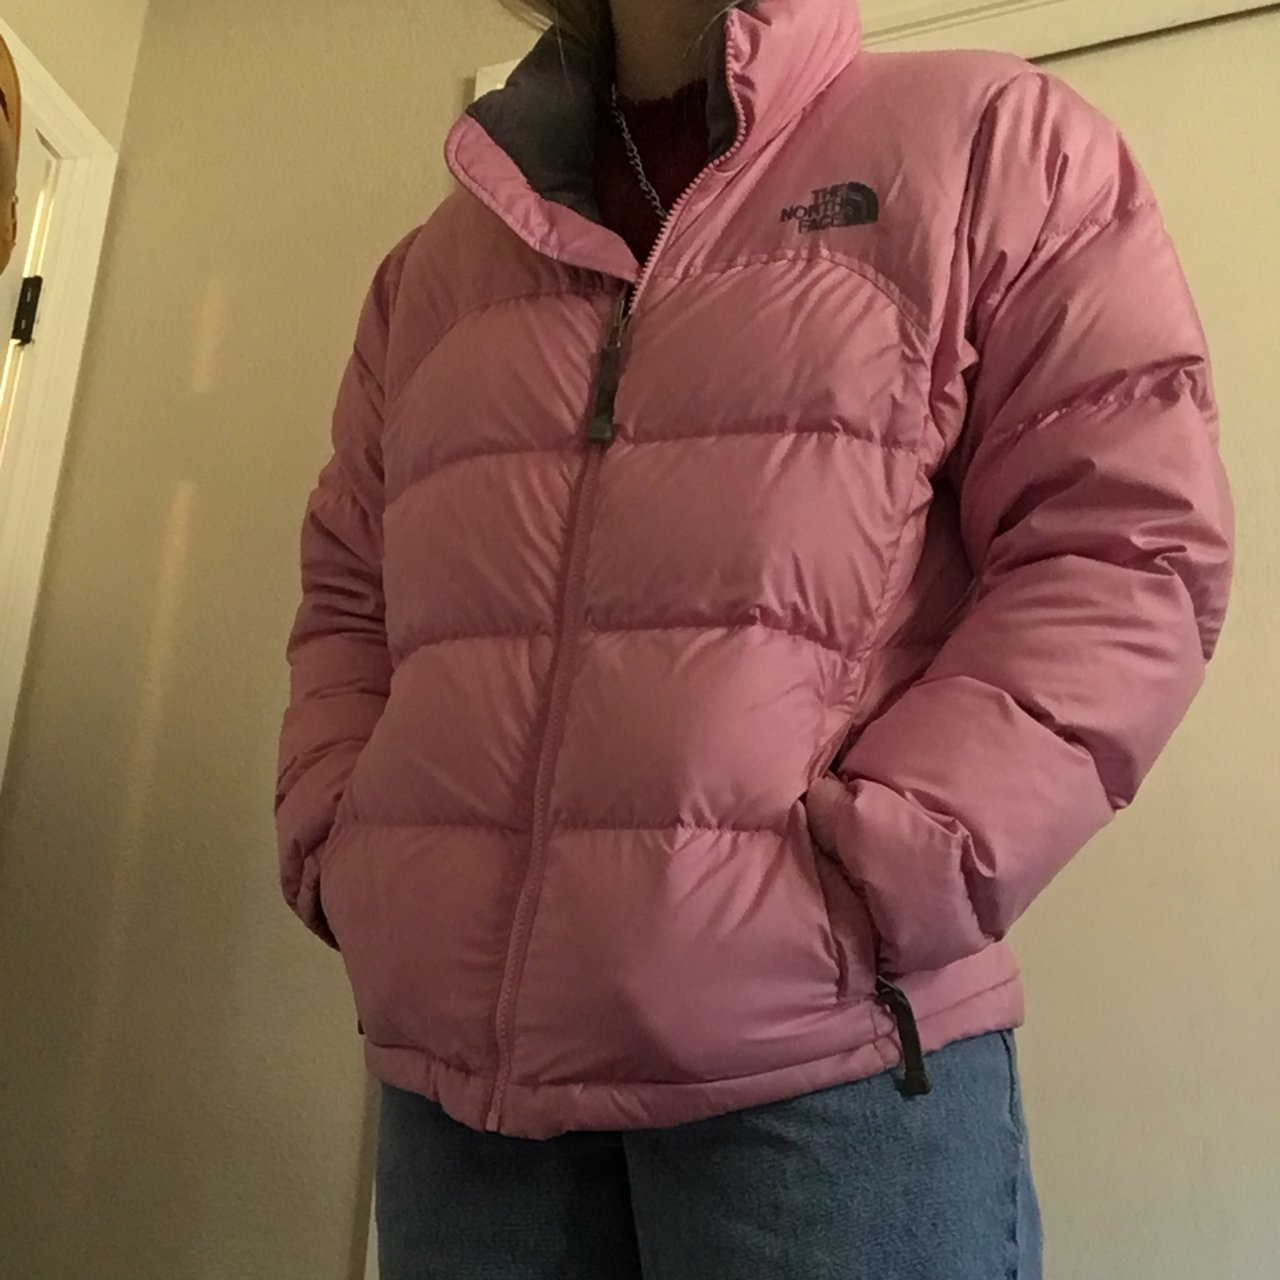 046aad6f58 Pink north face puffer jacket Women s Small